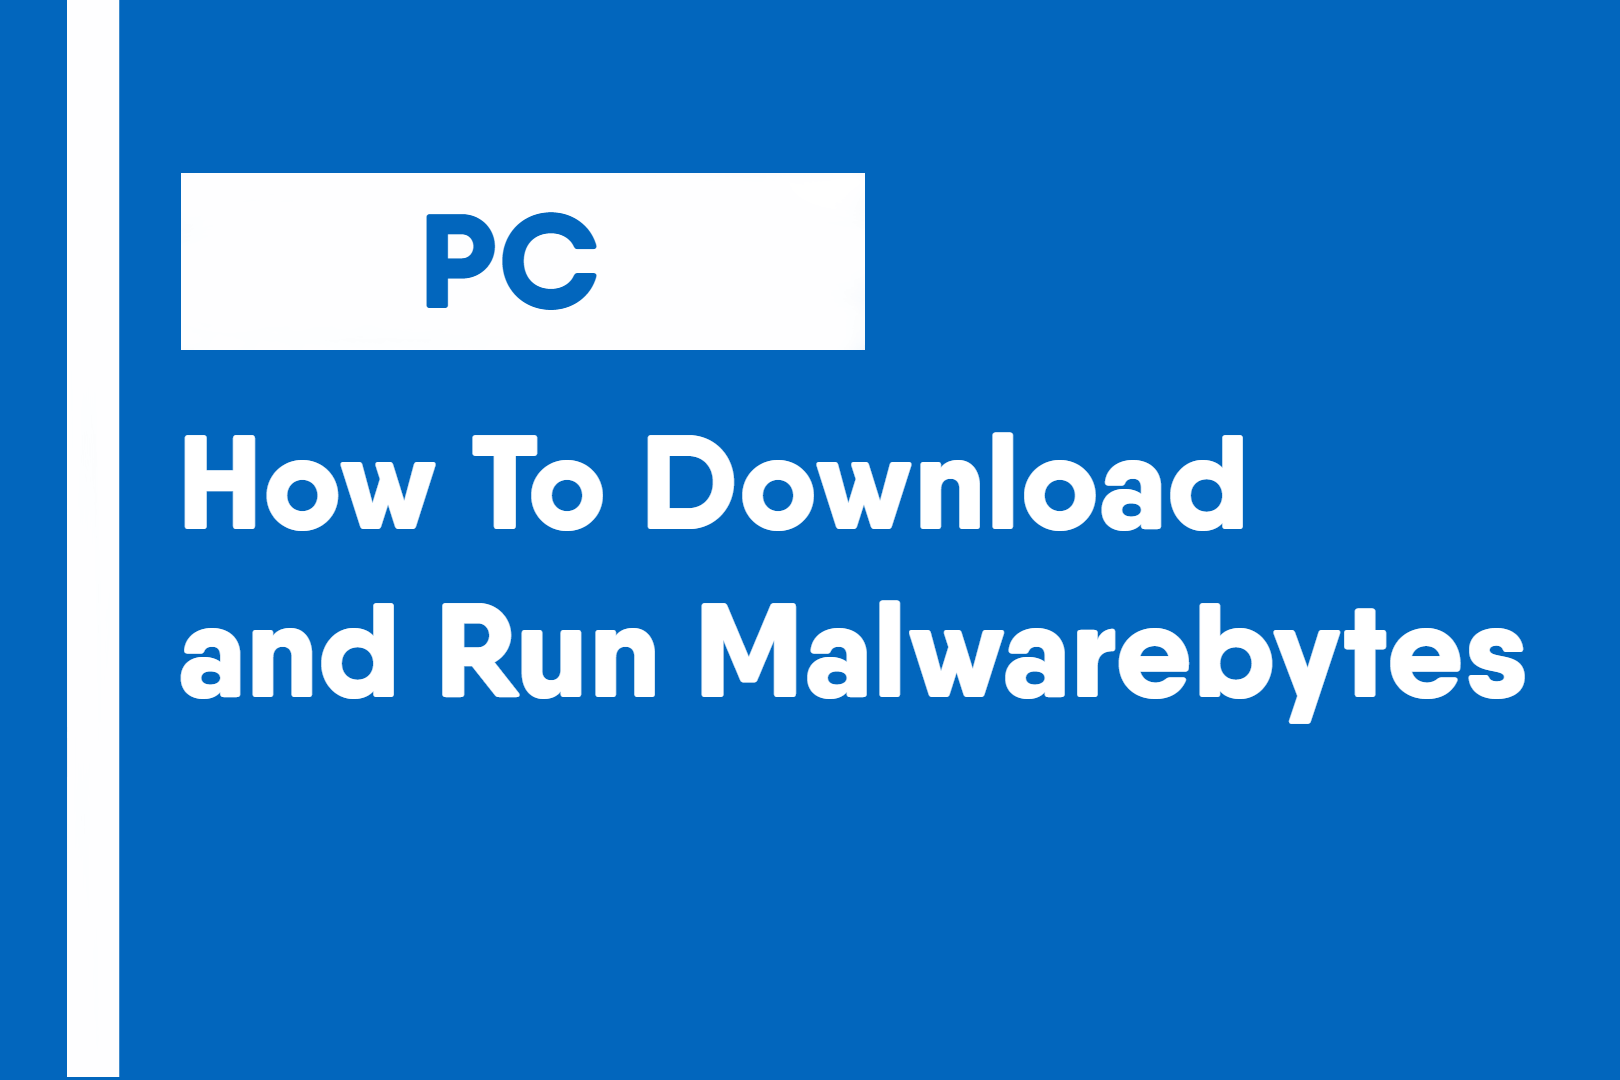 How To Download and Run Malwarebytes